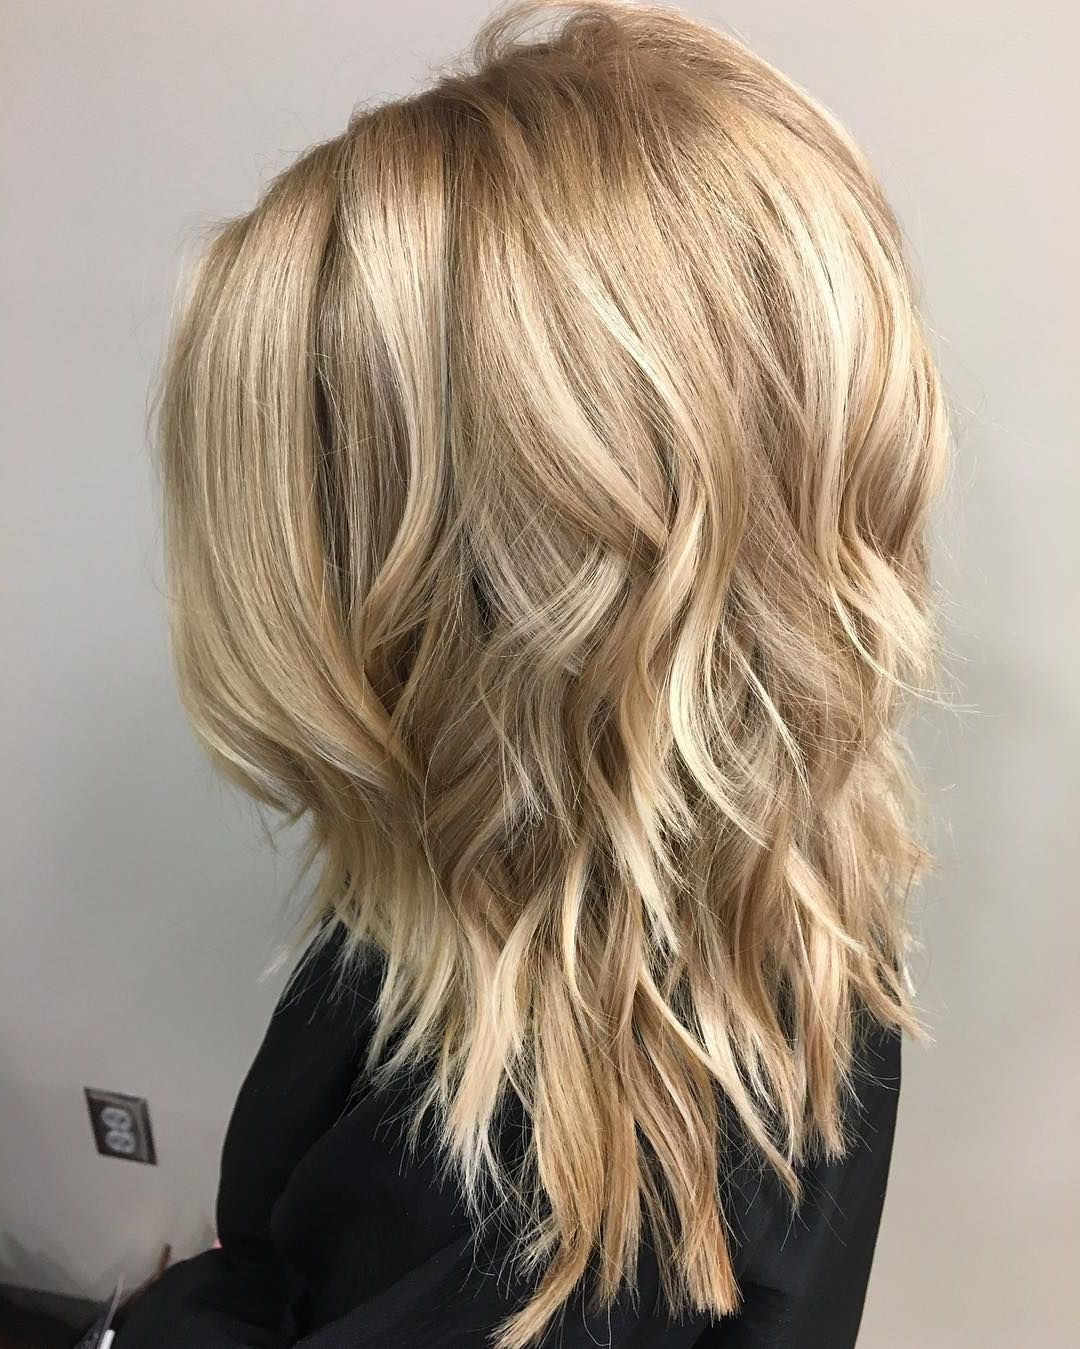 2017 Shoulder Length Layered Hairstyles Pertaining To Medium Hairstyle : Medium Length Layered Hairstyles Adorable With (View 17 of 20)